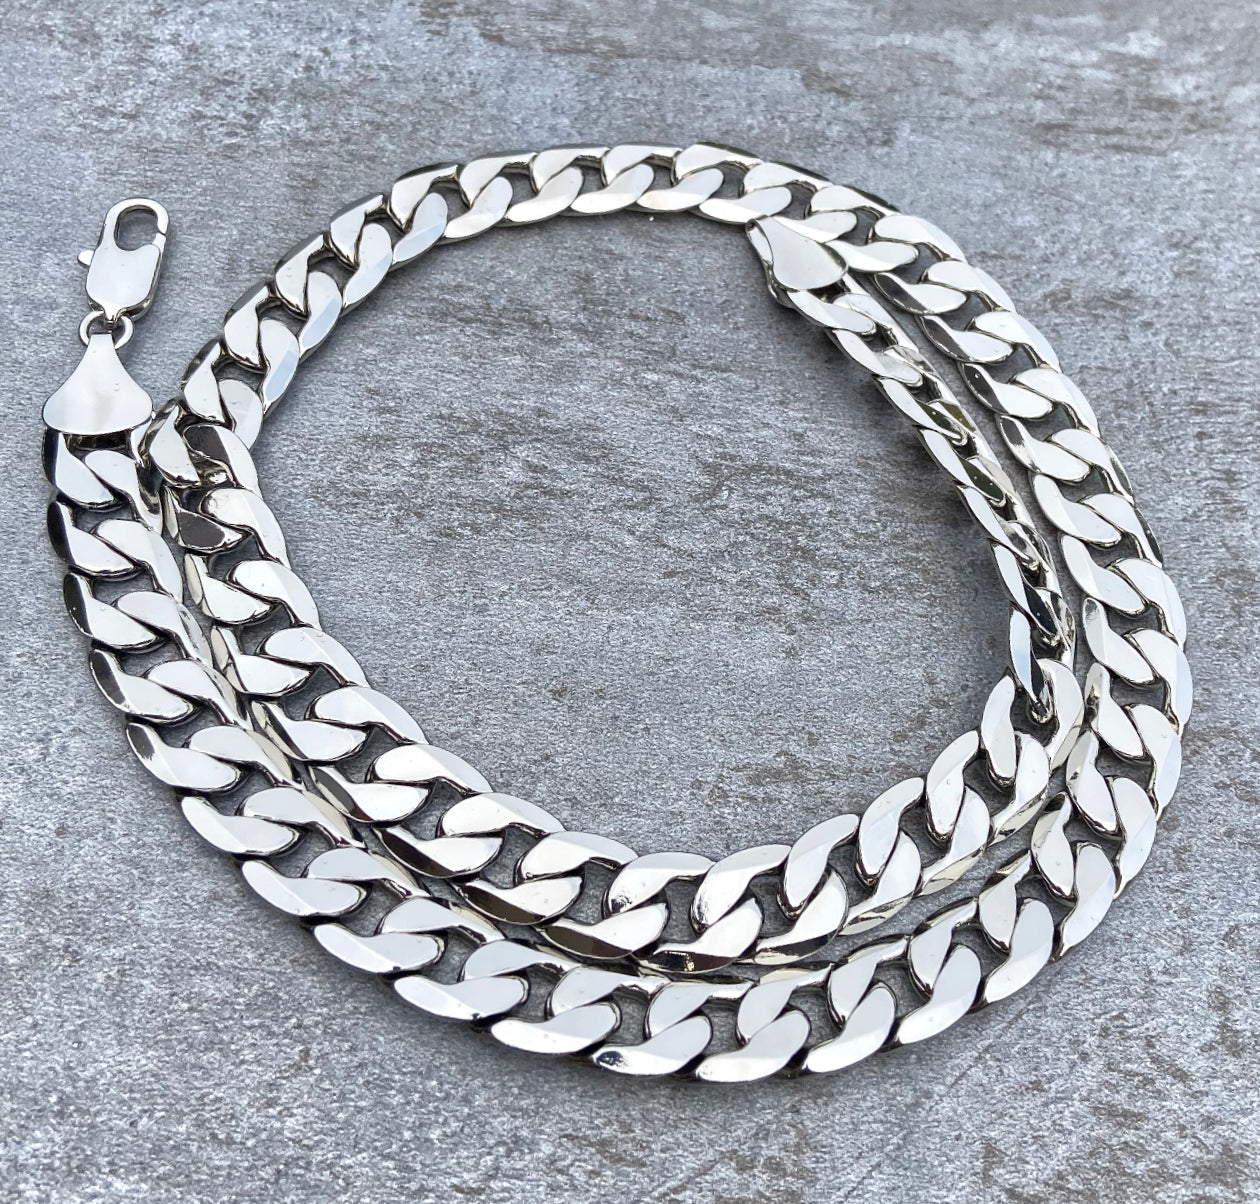 12mm Silver Curb Cuban Chain-Chains-Bling King-24-inch-Bling King